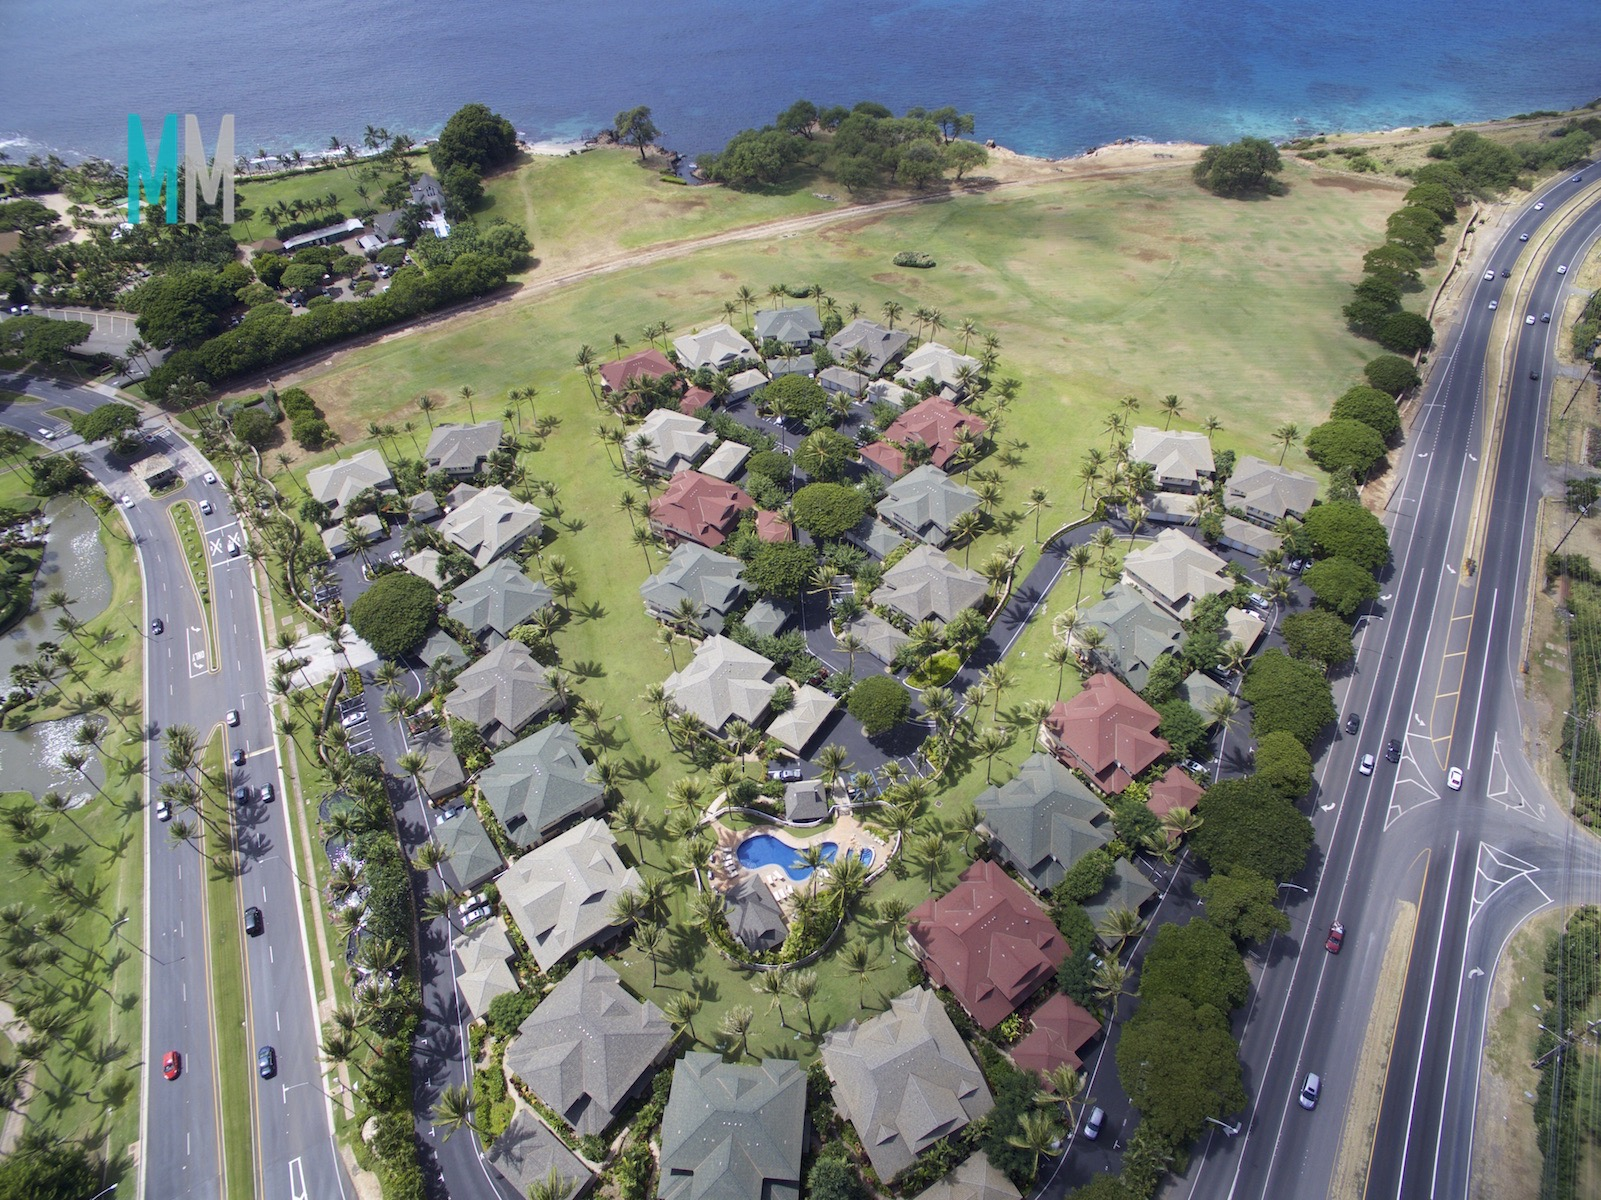 kai-lani-ko-olina-aerial-view-munro-murdock-hawaii-real-estate-dji_0045